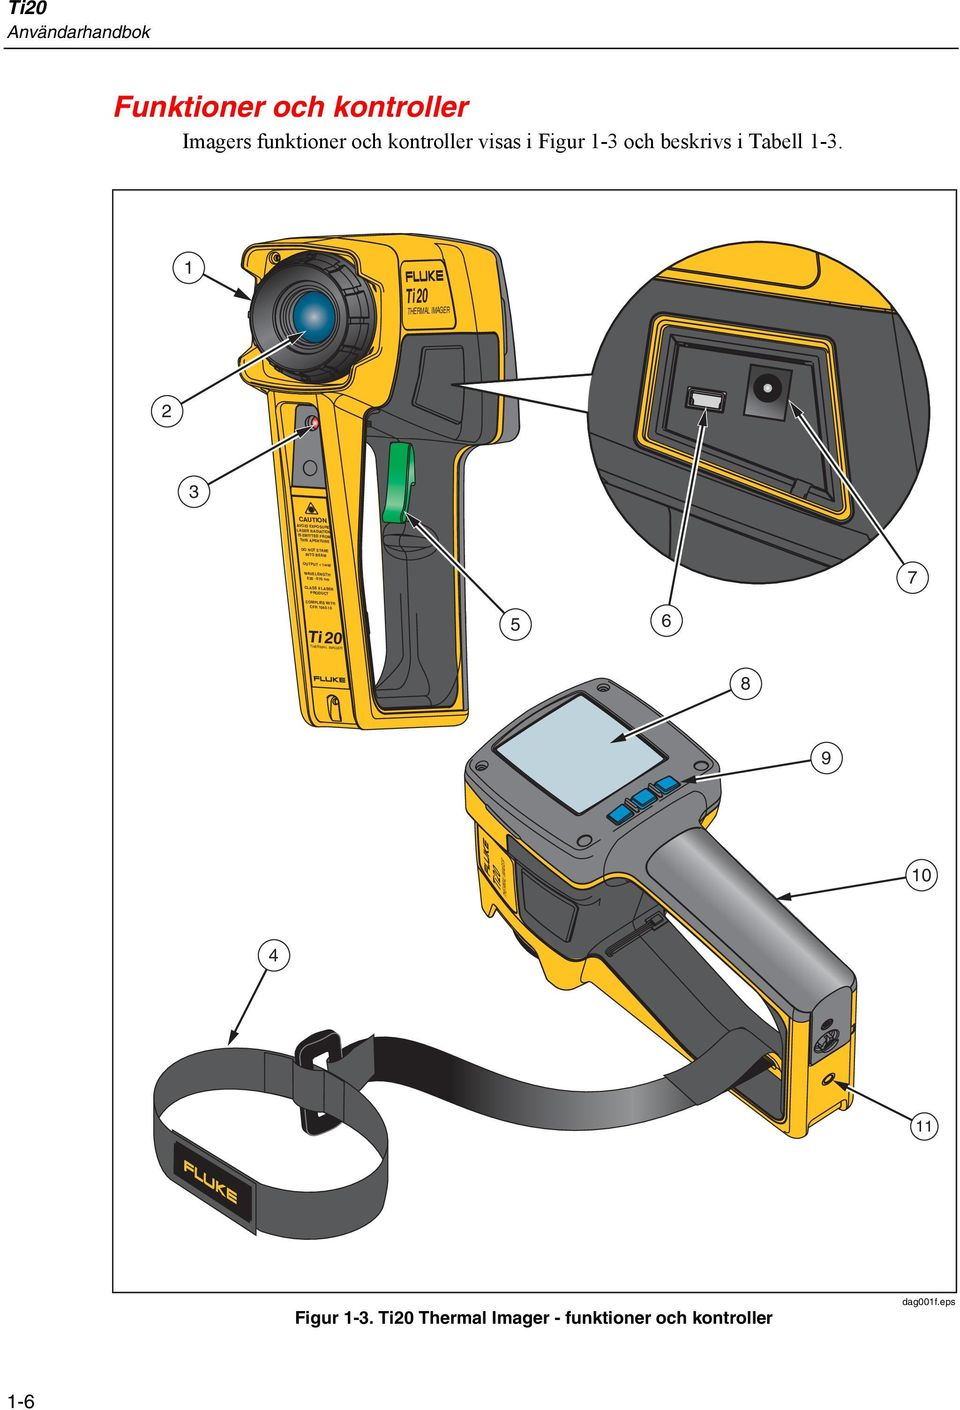 1 Ti20 THERMAL IMAGER 2 3 CAUTION THIS APERTURE DO NOT STARE INTO BEAM OUTPUT < 1mW WAVELENGTH: 630-670 nm CLASS II